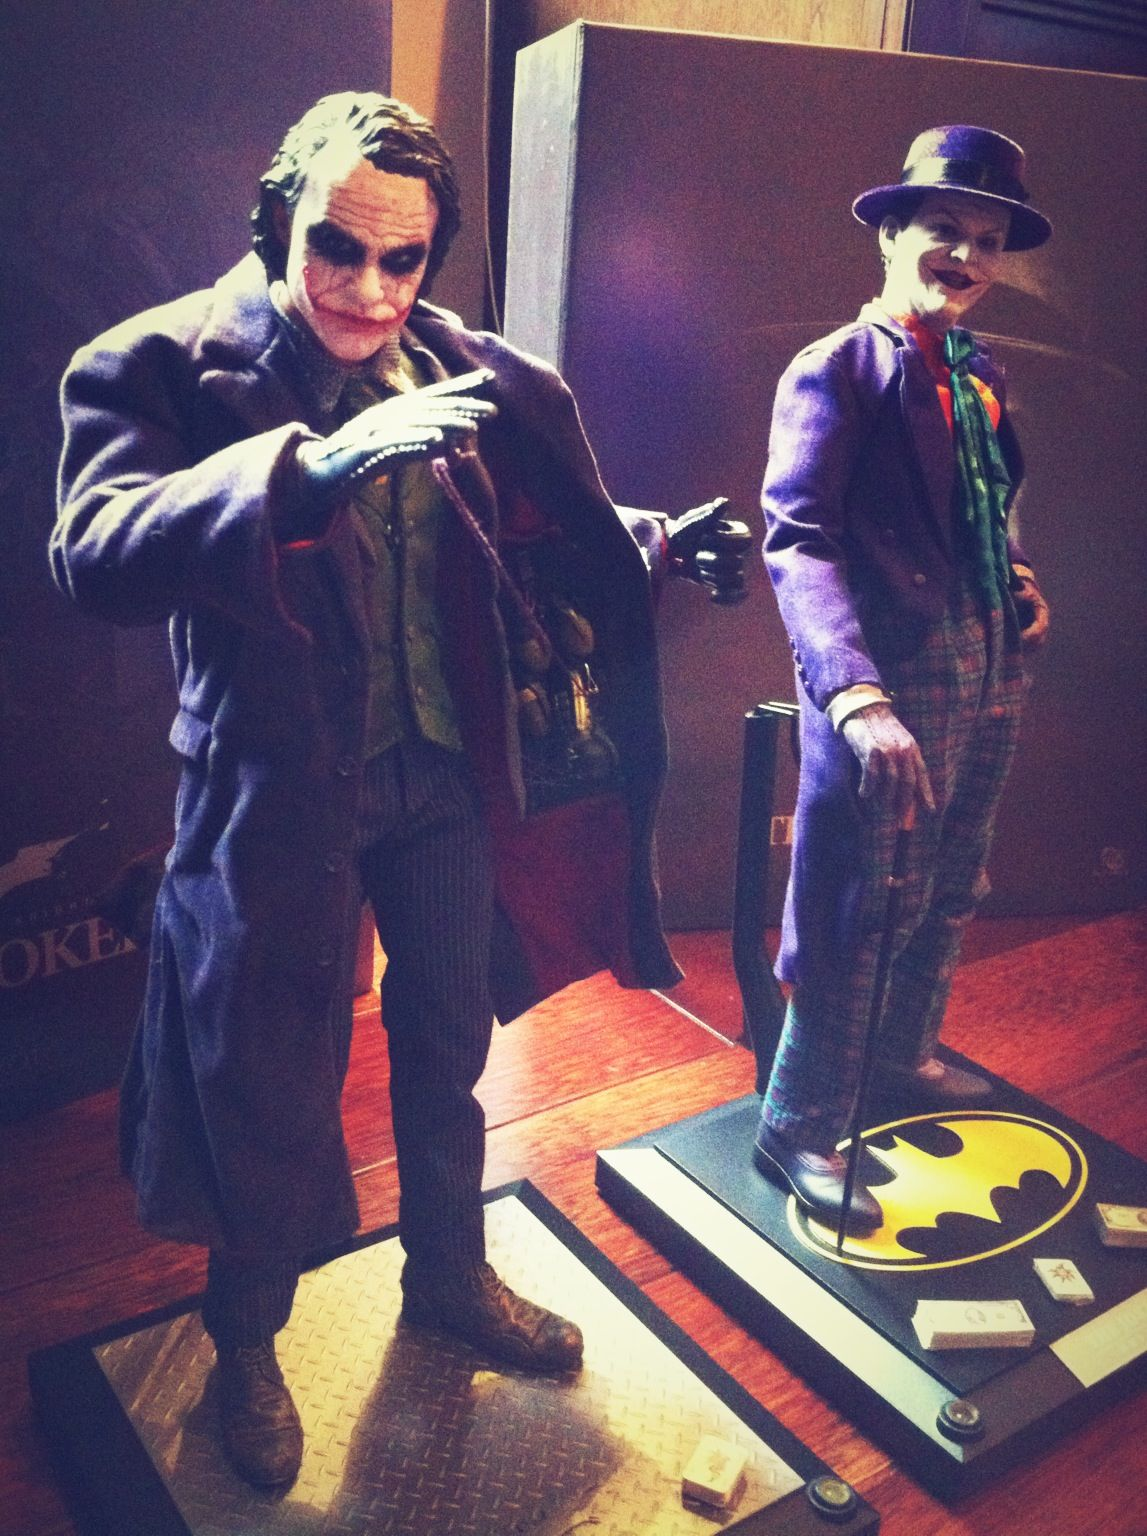 Hot Toys Joker Dx01 Dx08 Hot Toys Hot Toys Joker Toys Hot